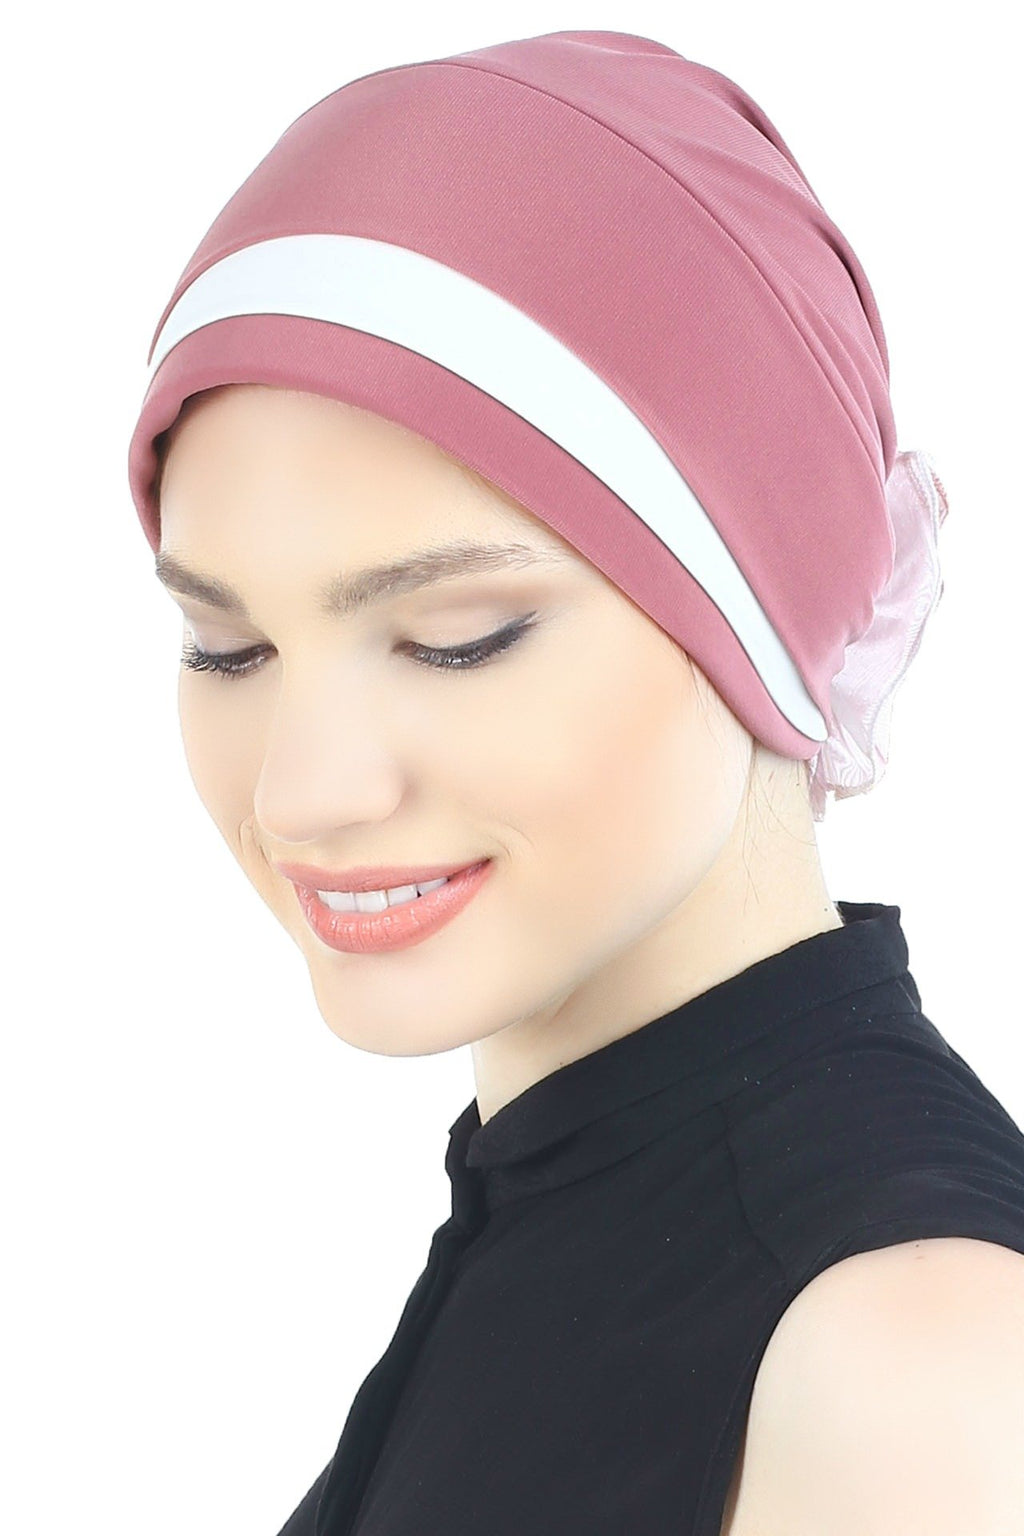 Deresina Padded hat for cancer patients paris pink cream